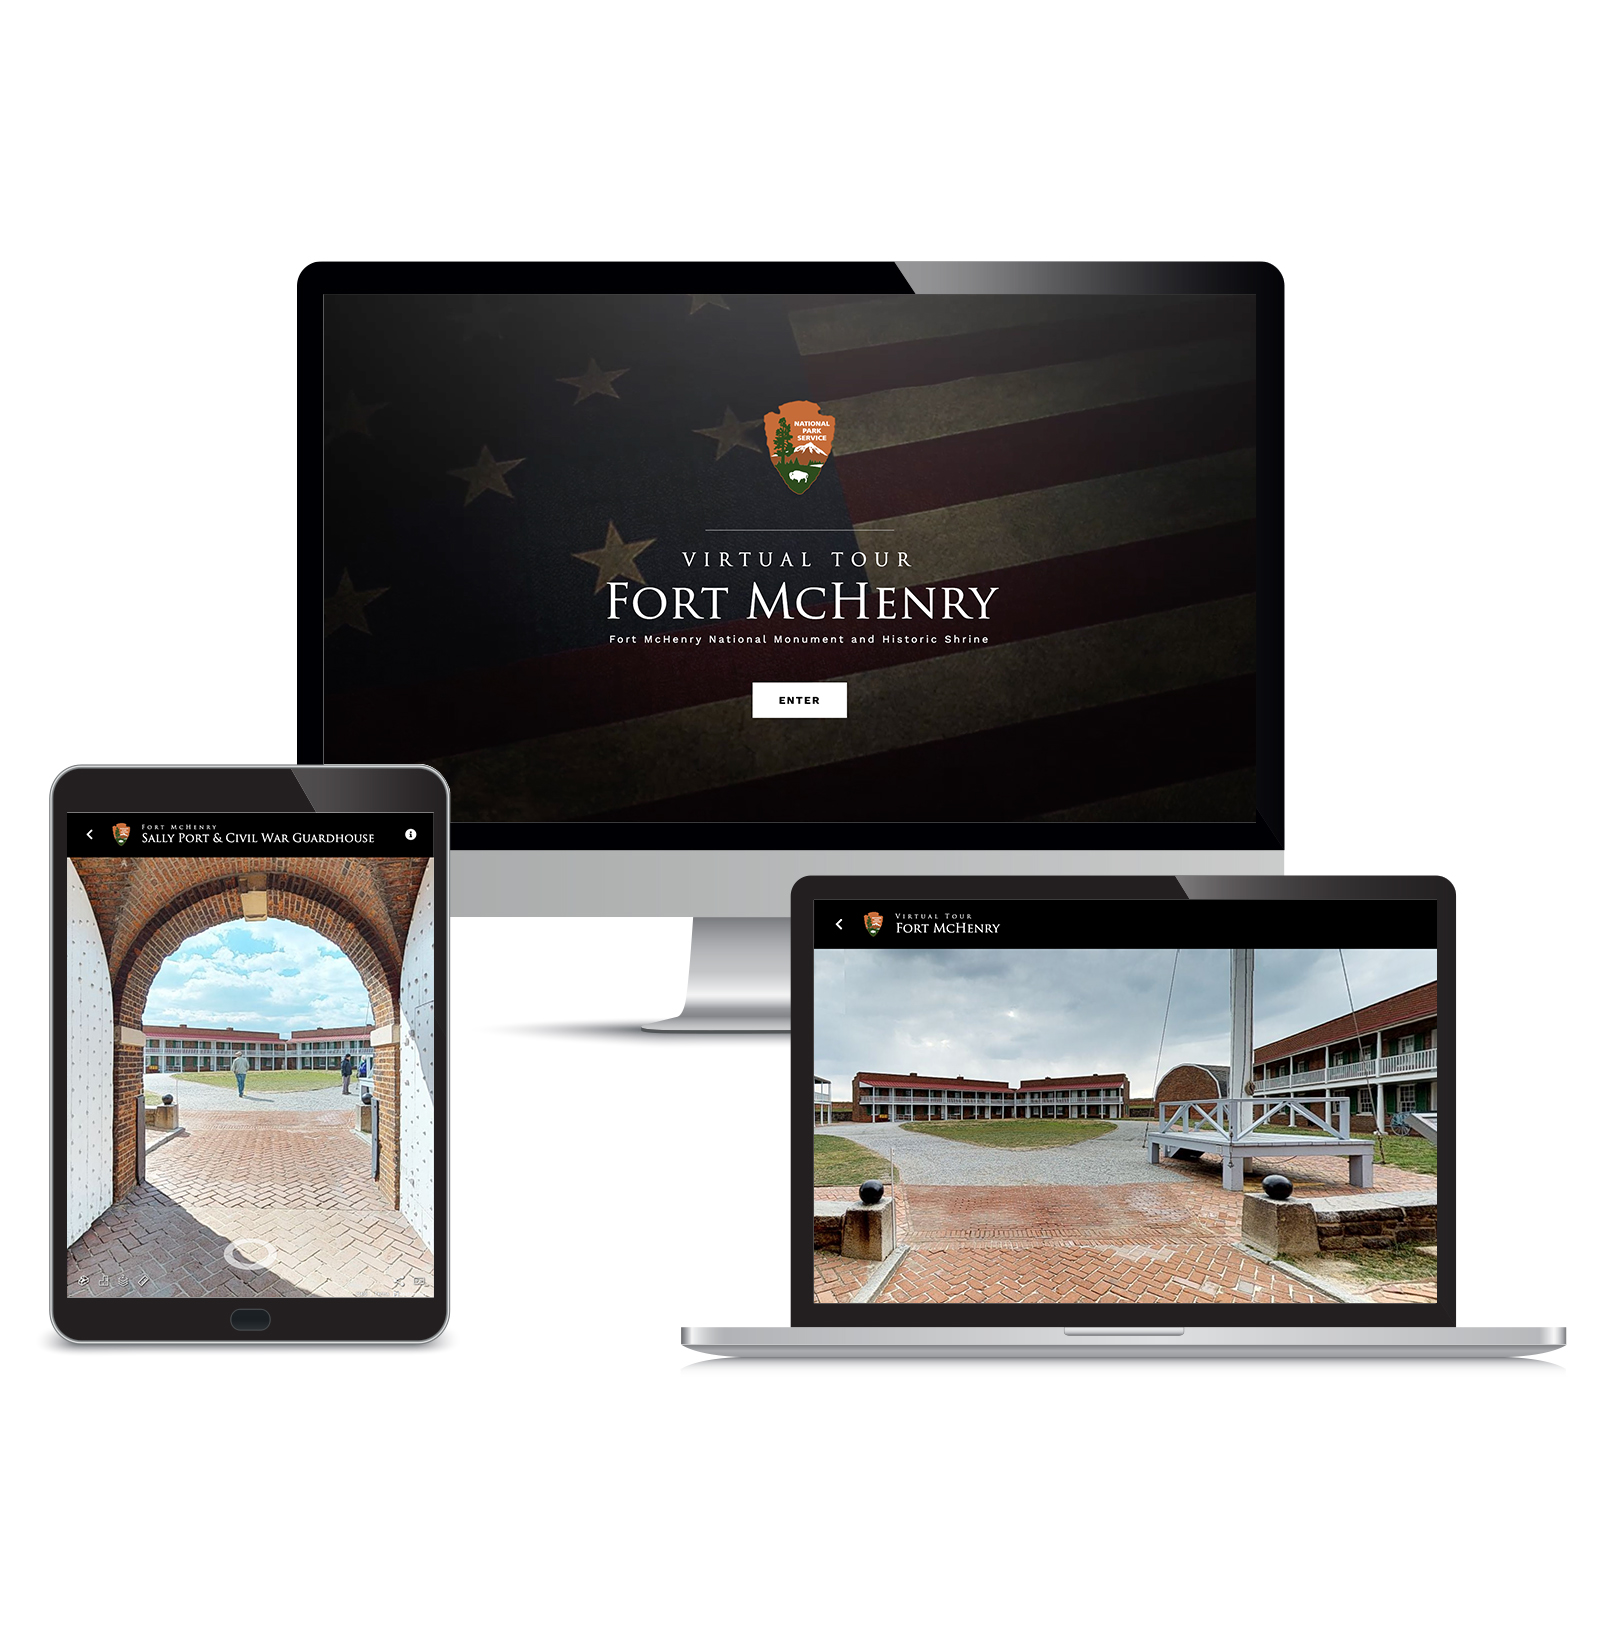 Fort McHenry Virtual Tour image